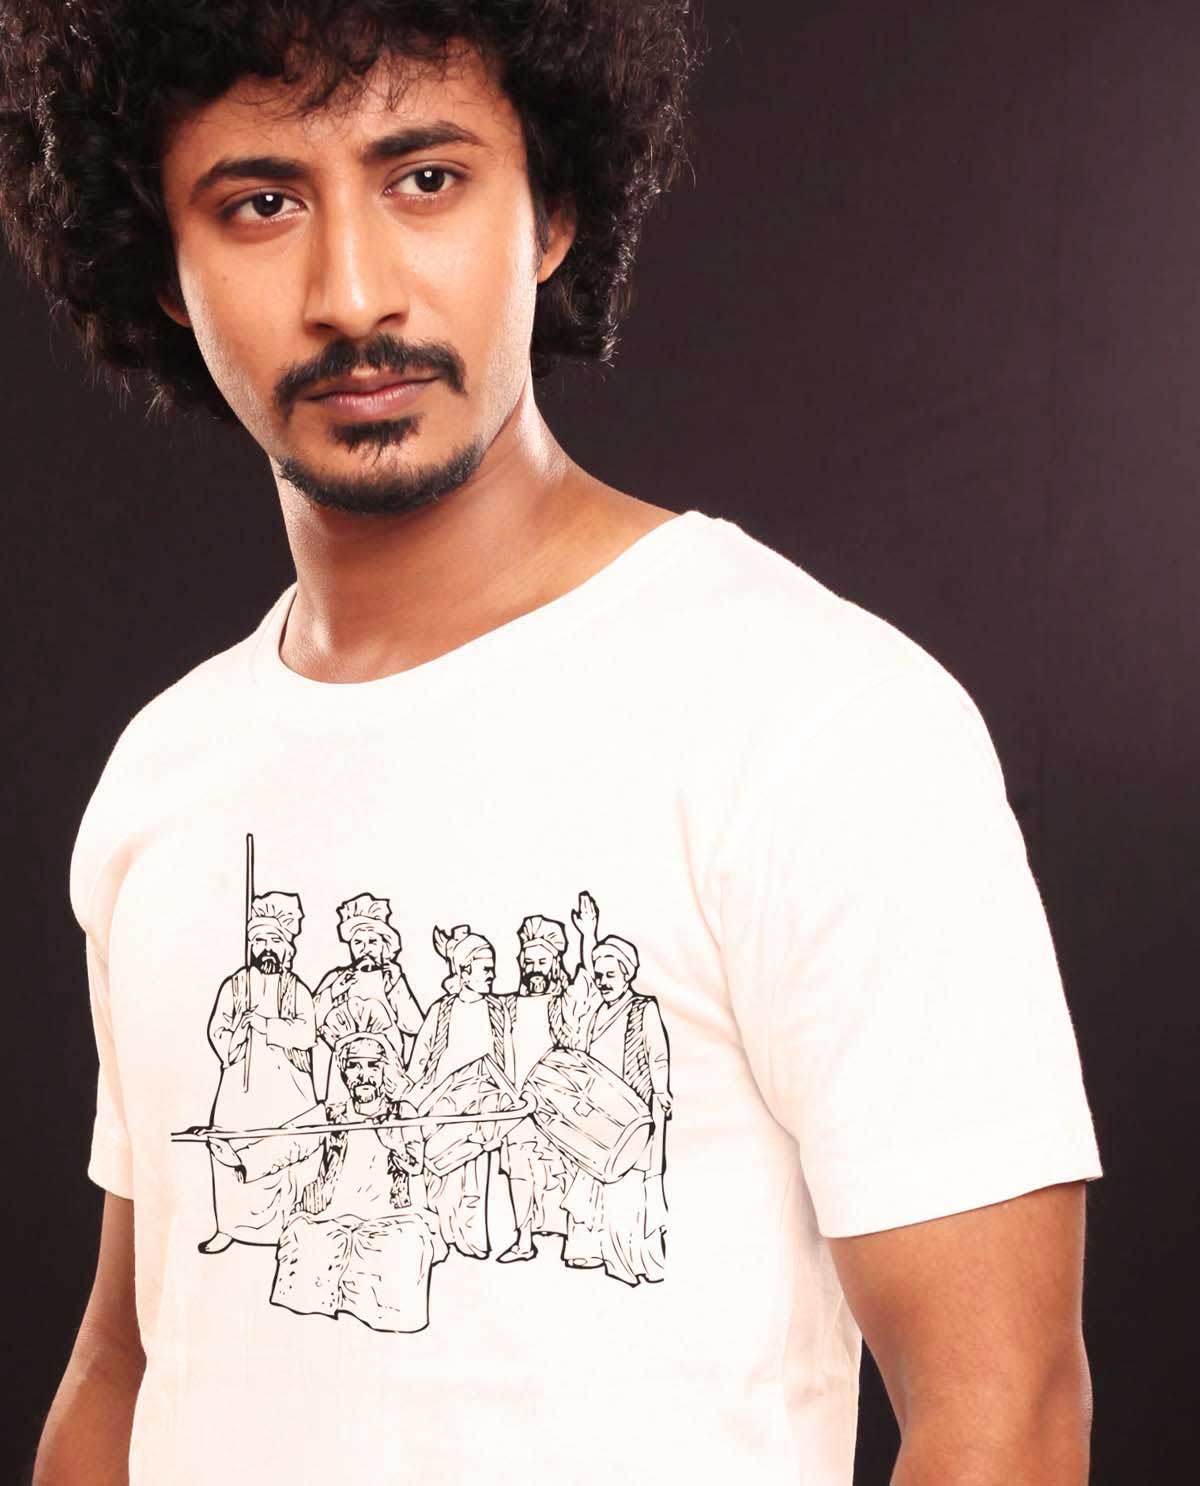 South Asian Male Model Wearing Gildan Ultra Cotton Tshirt with graphic design image of bhagara dancers.